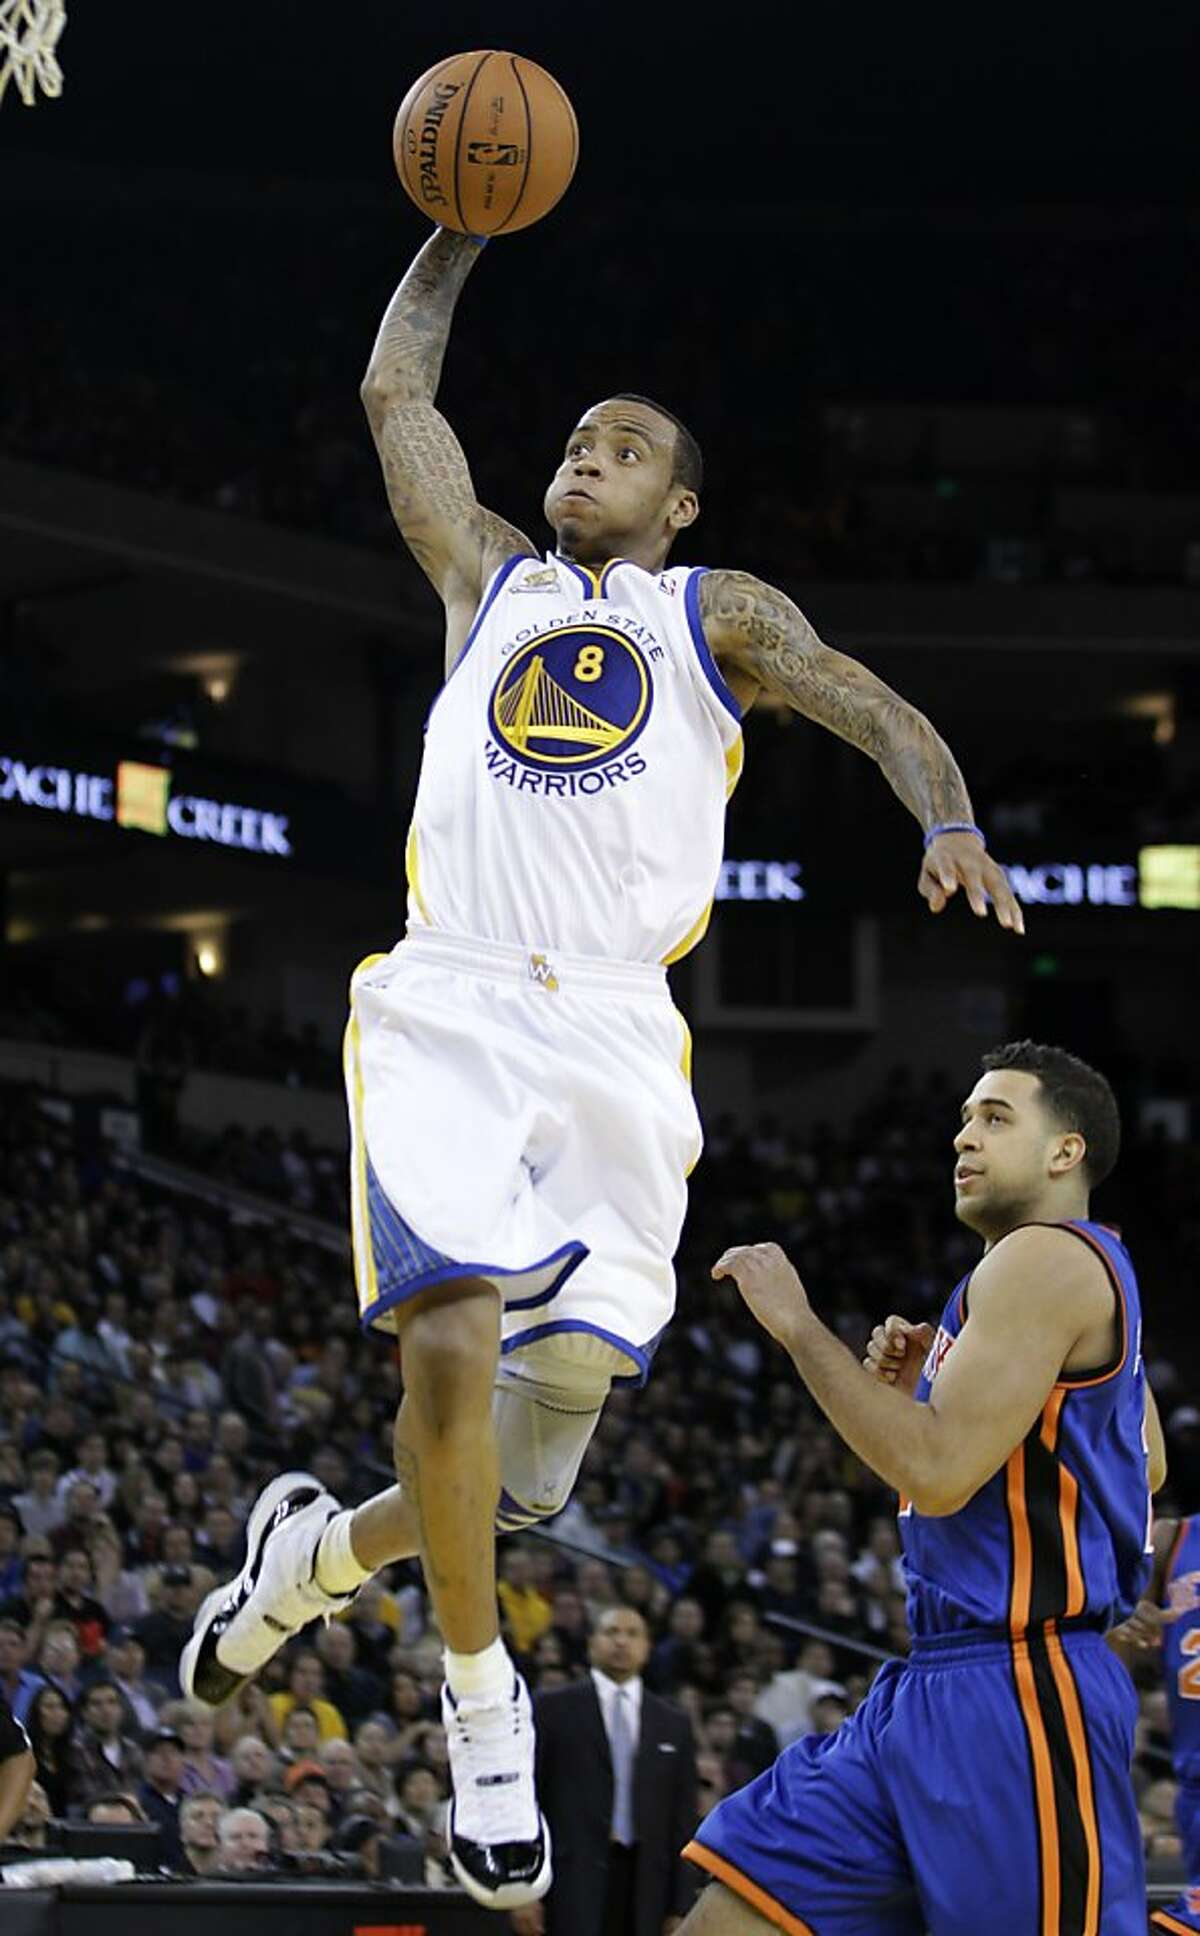 Golden State Warriors' Monta Ellis takes a shot over New York Knicks' Landry Fields during the first half of an NBA basketball game Wednesday, Dec. 28, 2011, in Oakland, Calif. (AP Photo/Ben Margot)